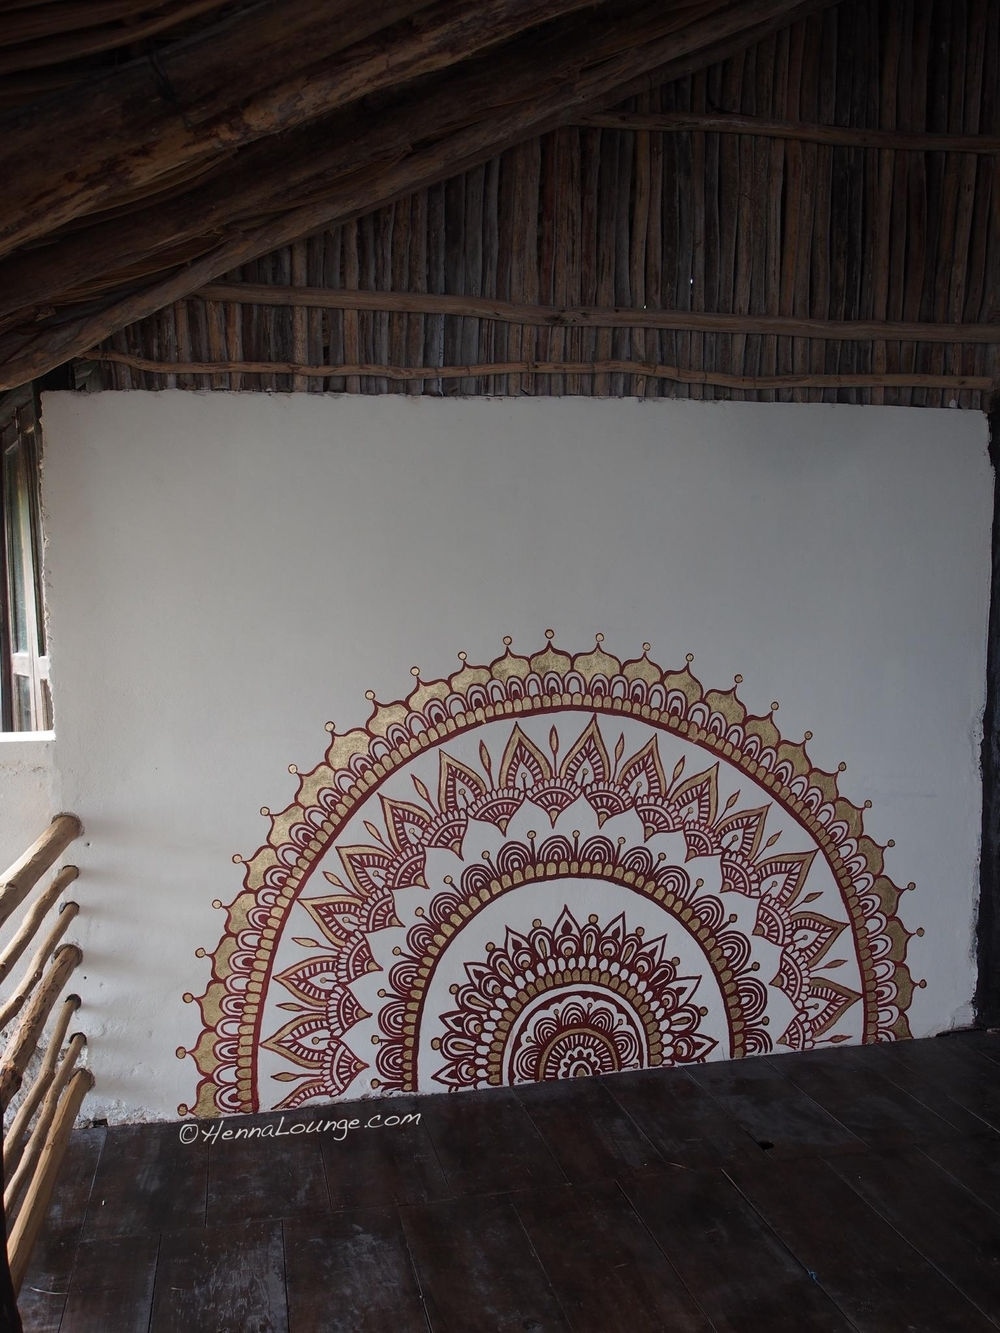 Mandala I painted at Utopia Tulum yoga studio